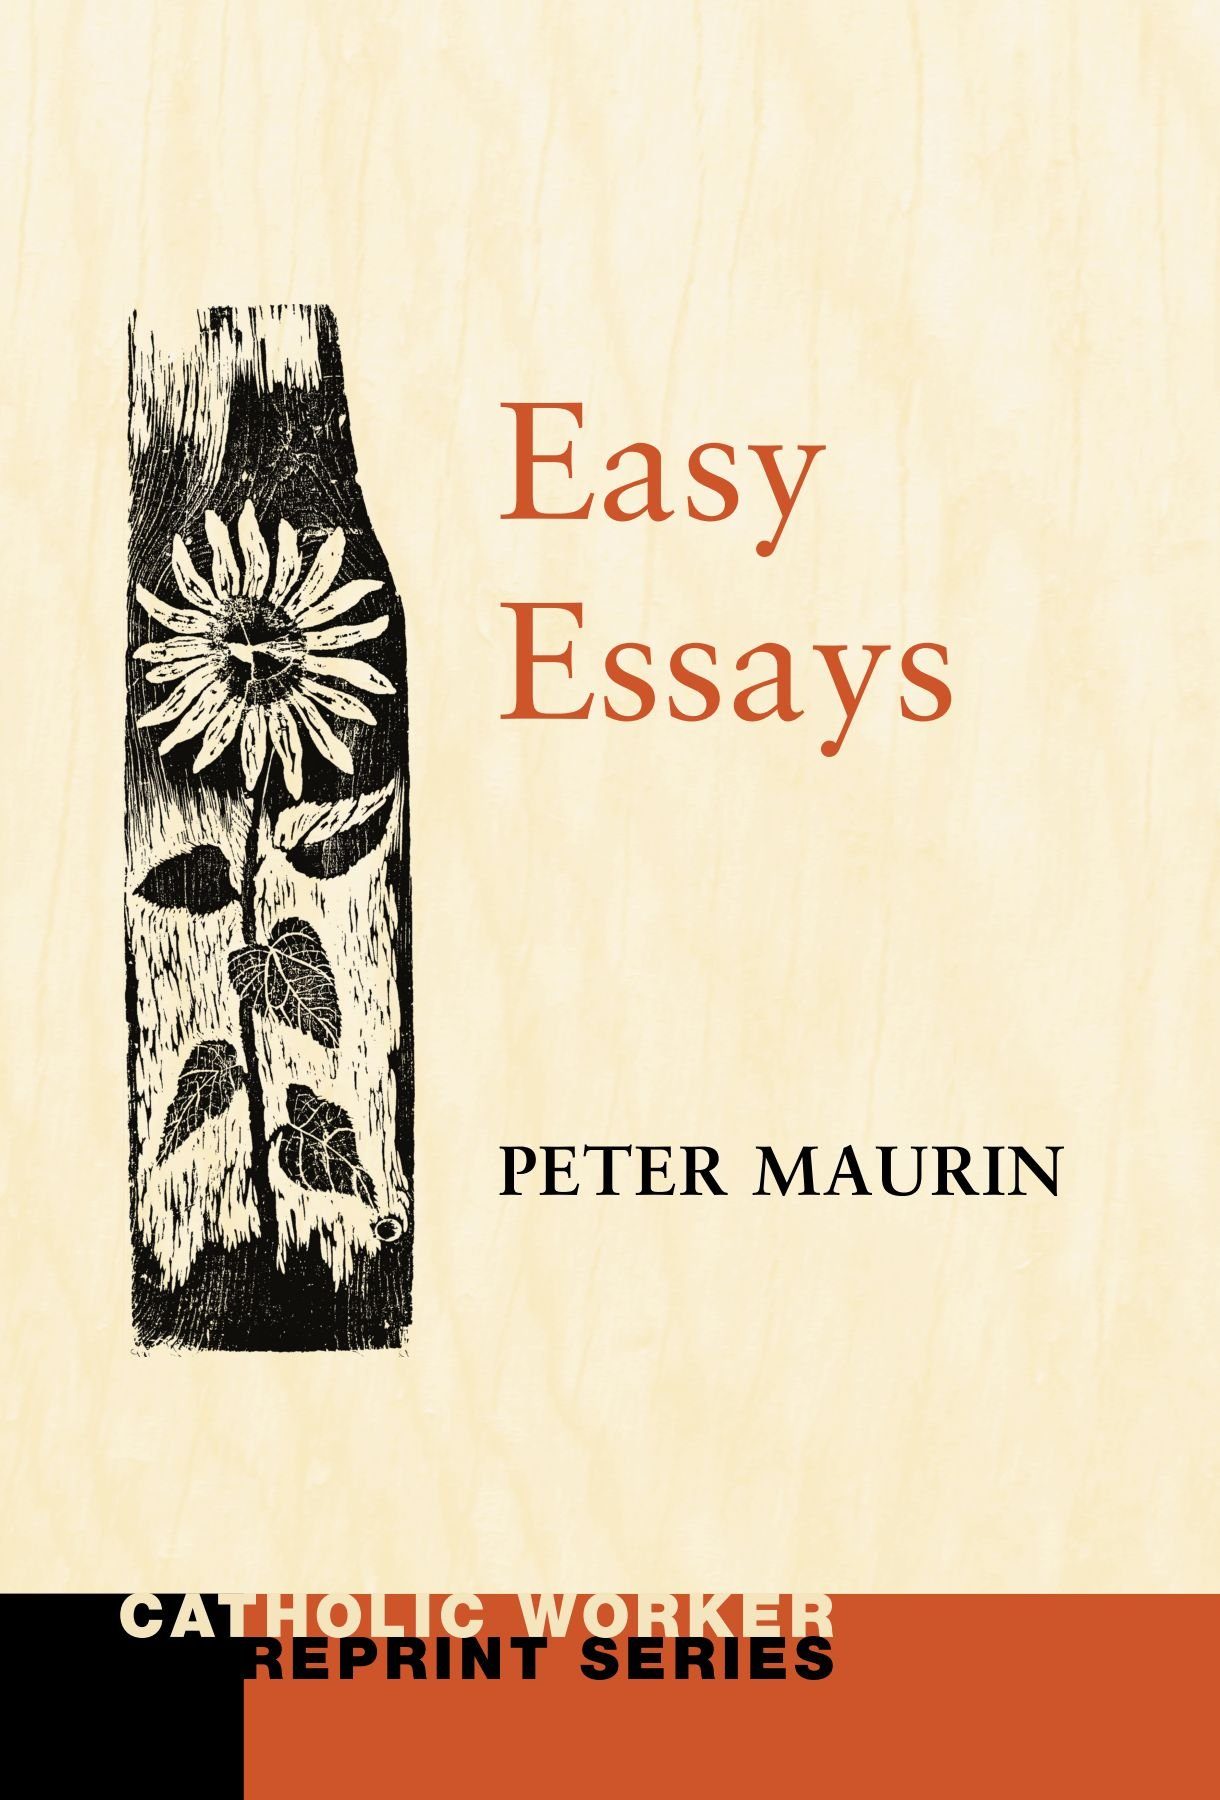 easy essays catholic worker reprint series peter maurin fritz easy essays catholic worker reprint series peter maurin fritz eichenberg 9781608990627 com books